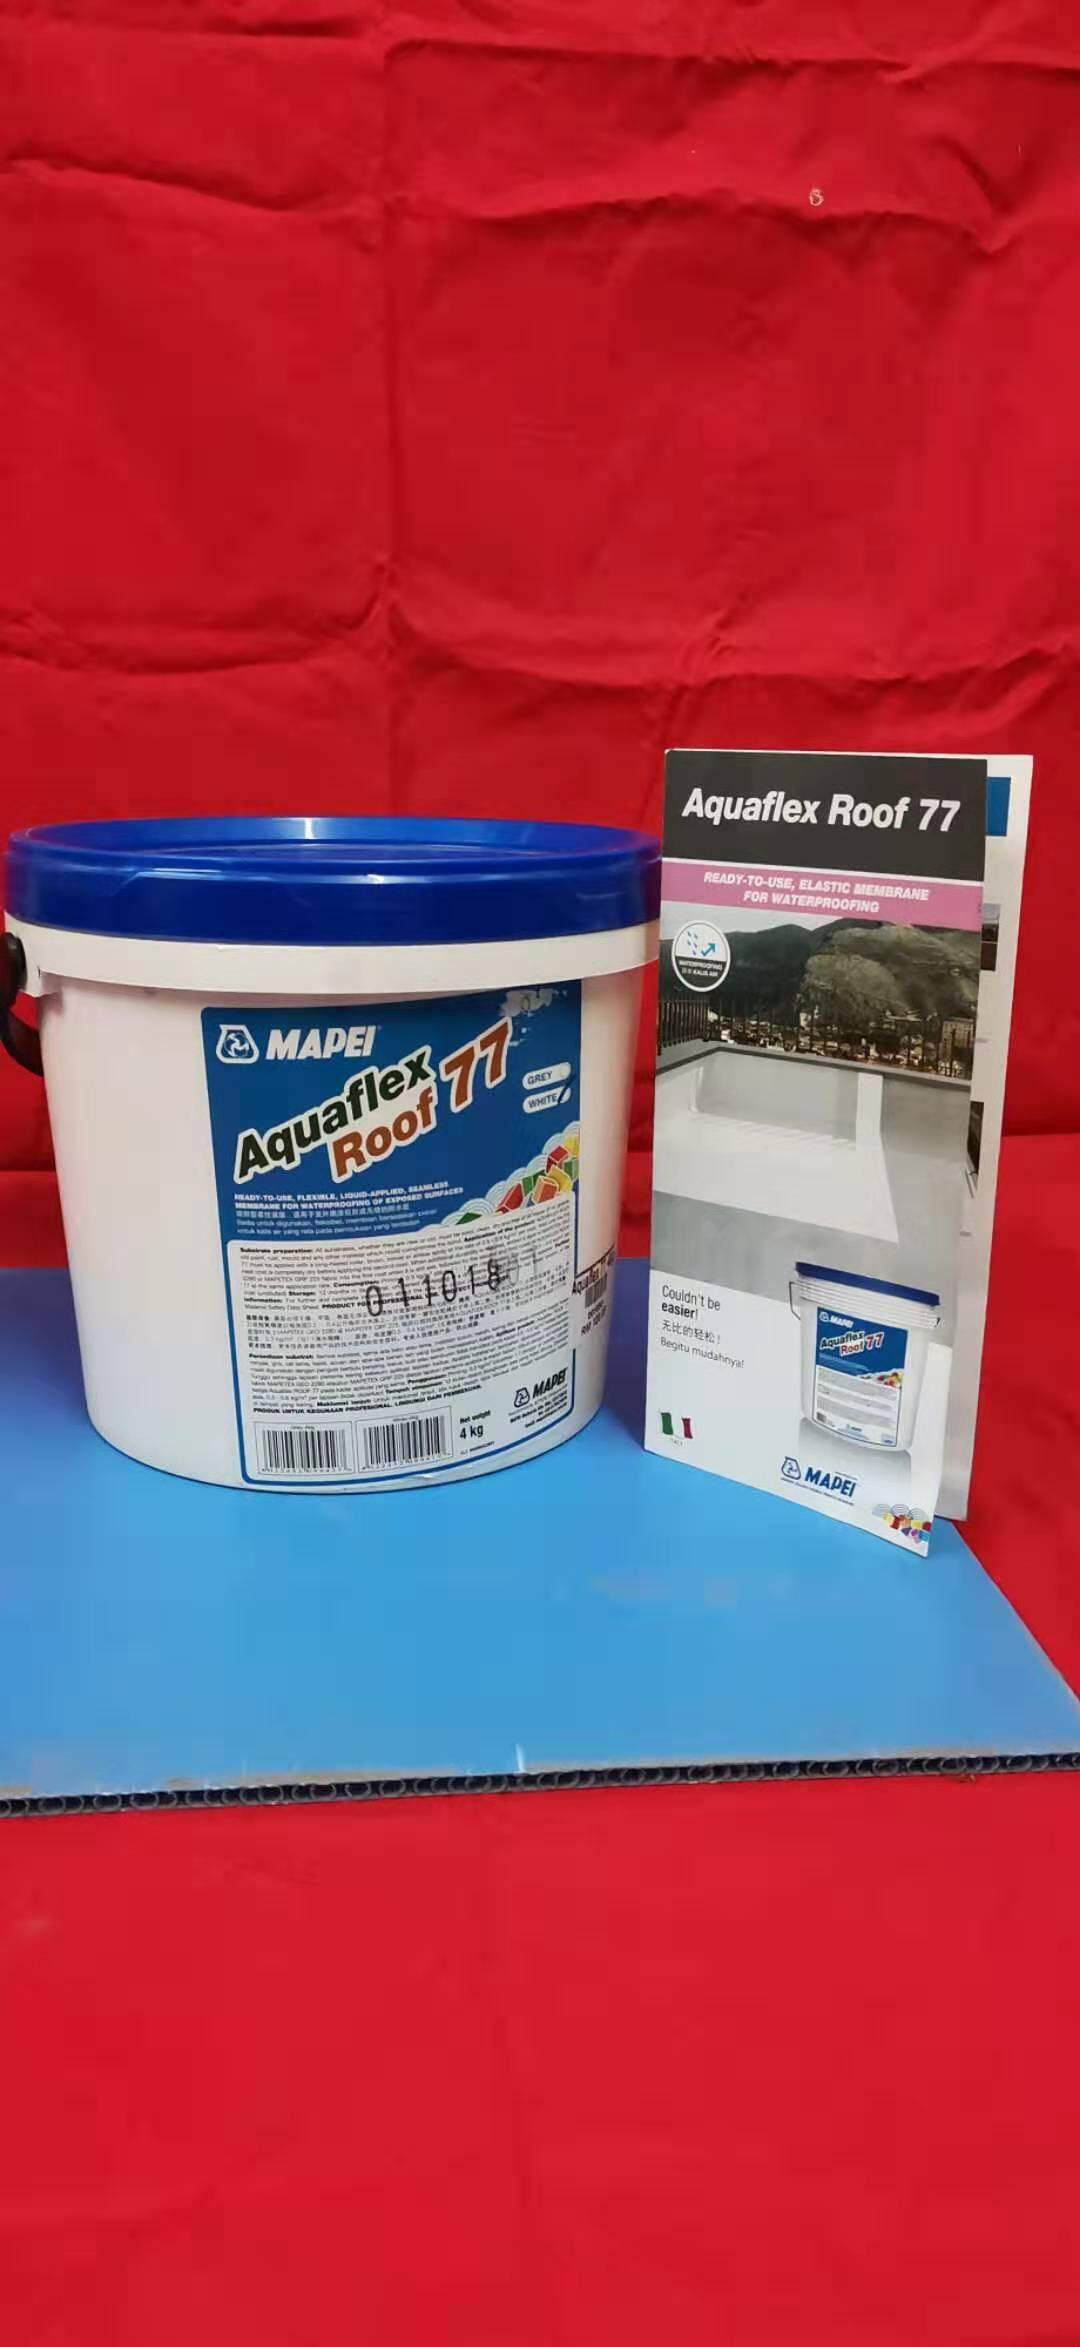 Aquaflex roof 77 (MAPEI) #waterproofing *Italy product* (4KG)